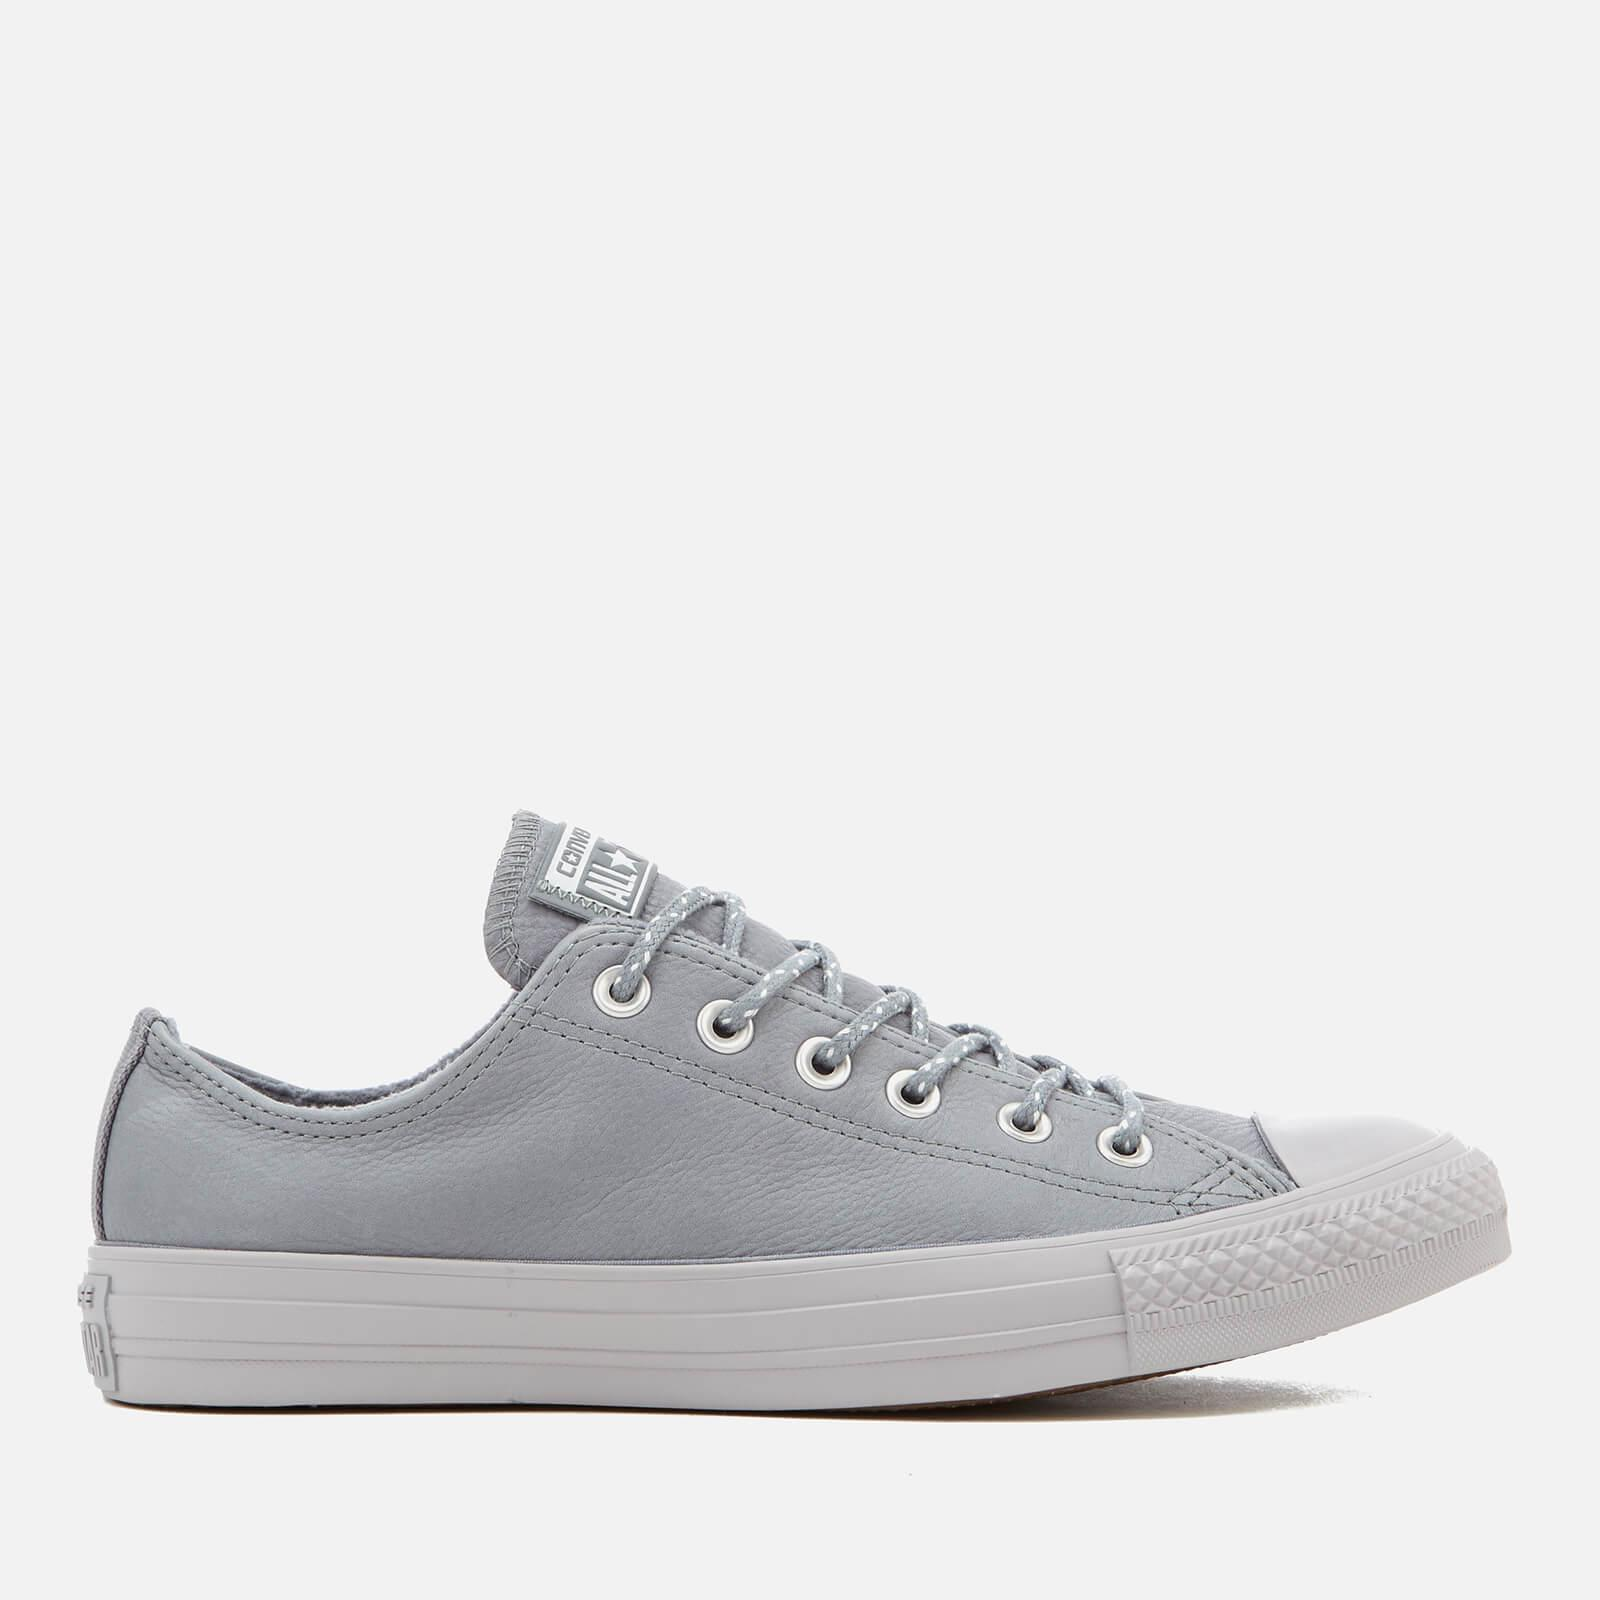 24cea5df4a99 Lyst - Converse Chuck Taylor All Star Ox Trainers in Gray .